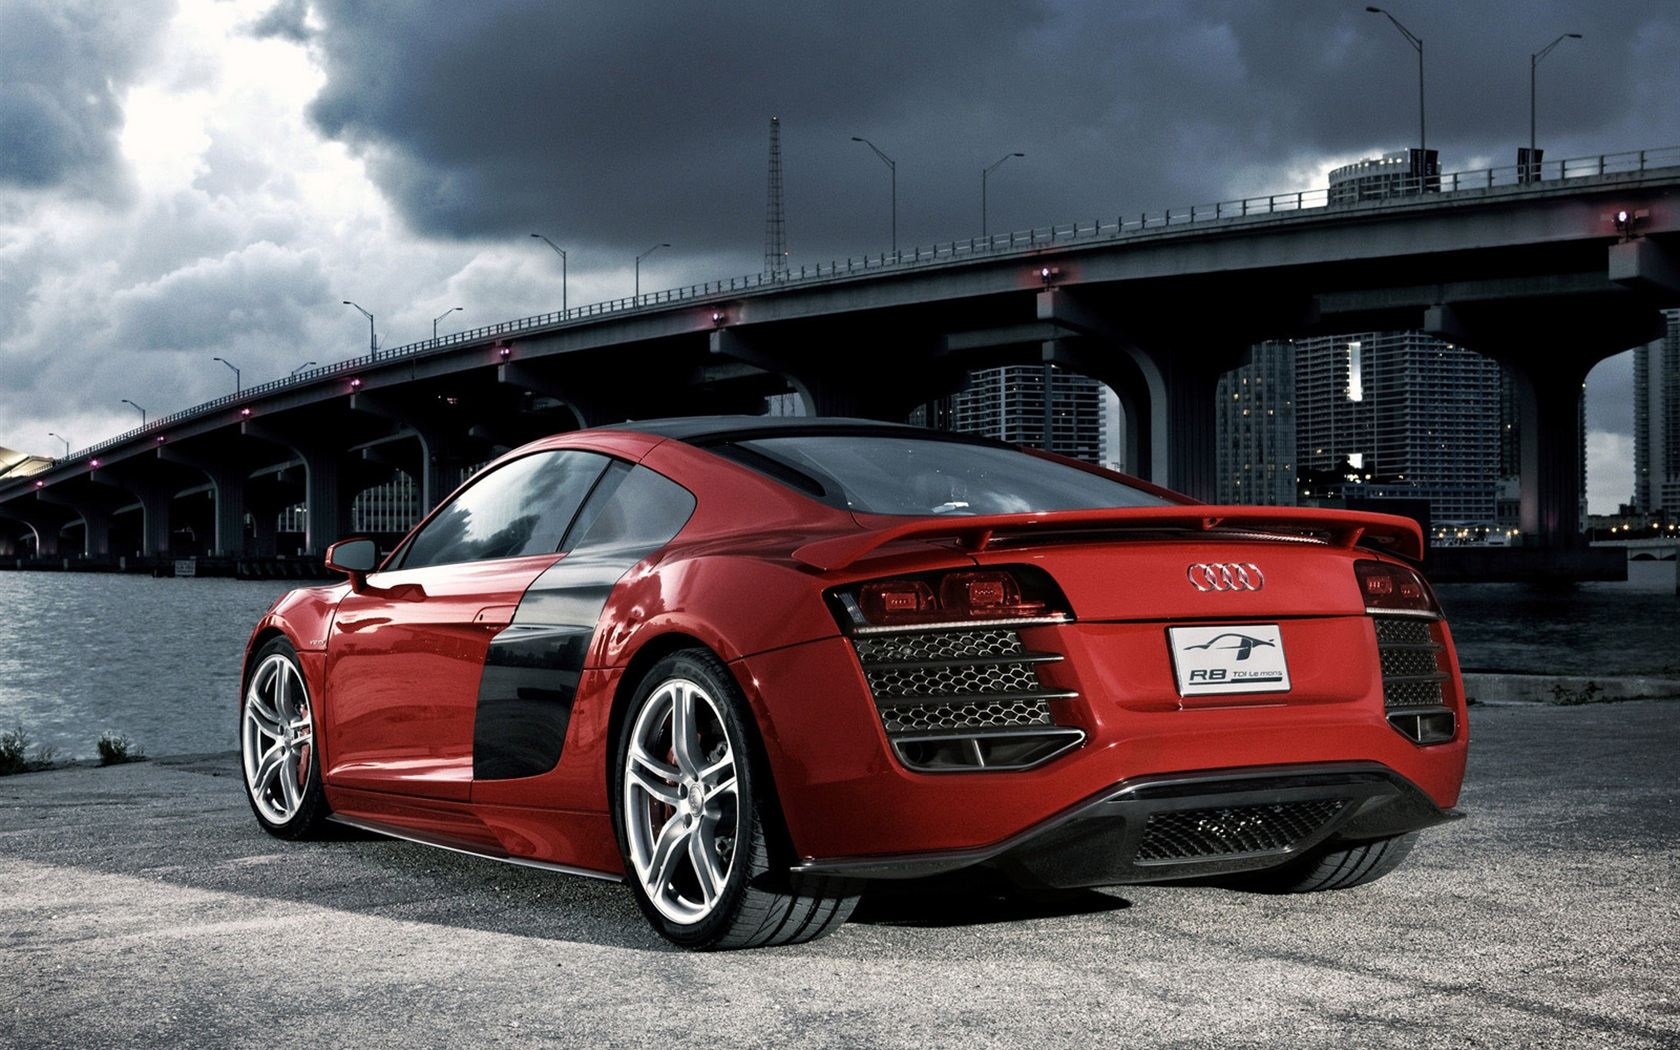 Wallpaper Audi R8 Red 1600x1200 Hd Picture Image